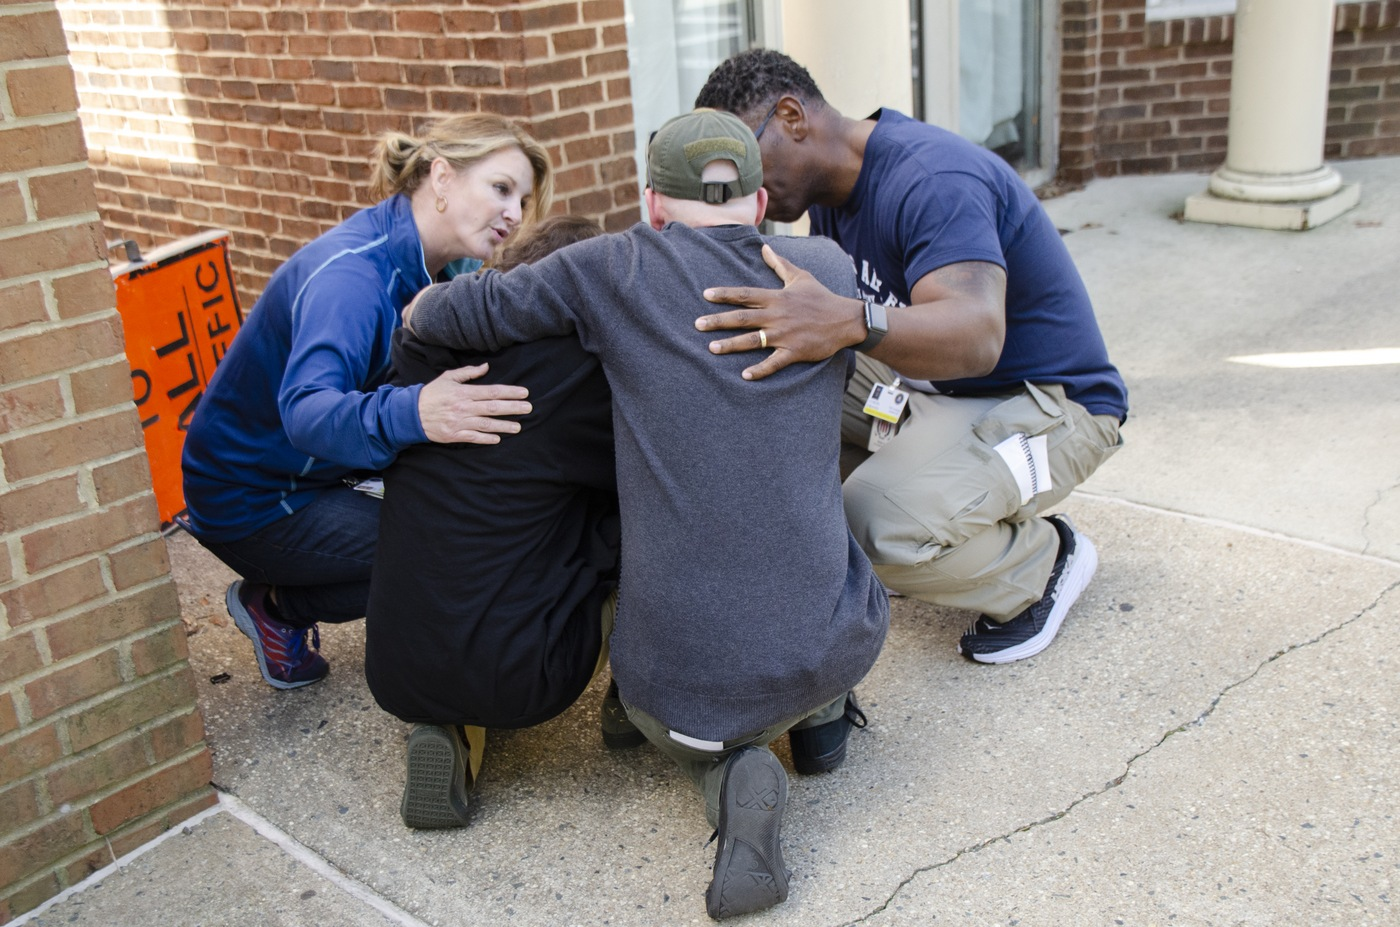 Kim Case (left), a victim advocate and consultant, and Curtis Graves (right), a commander in the Mobile Police Department in Alabama, console family members of a victim during a mock mass-casualty event September 25, 2019, at the FBI Training Academy in Quantico, Virginia. The exercise culminated ELEVATE-APB training for victim service providers.